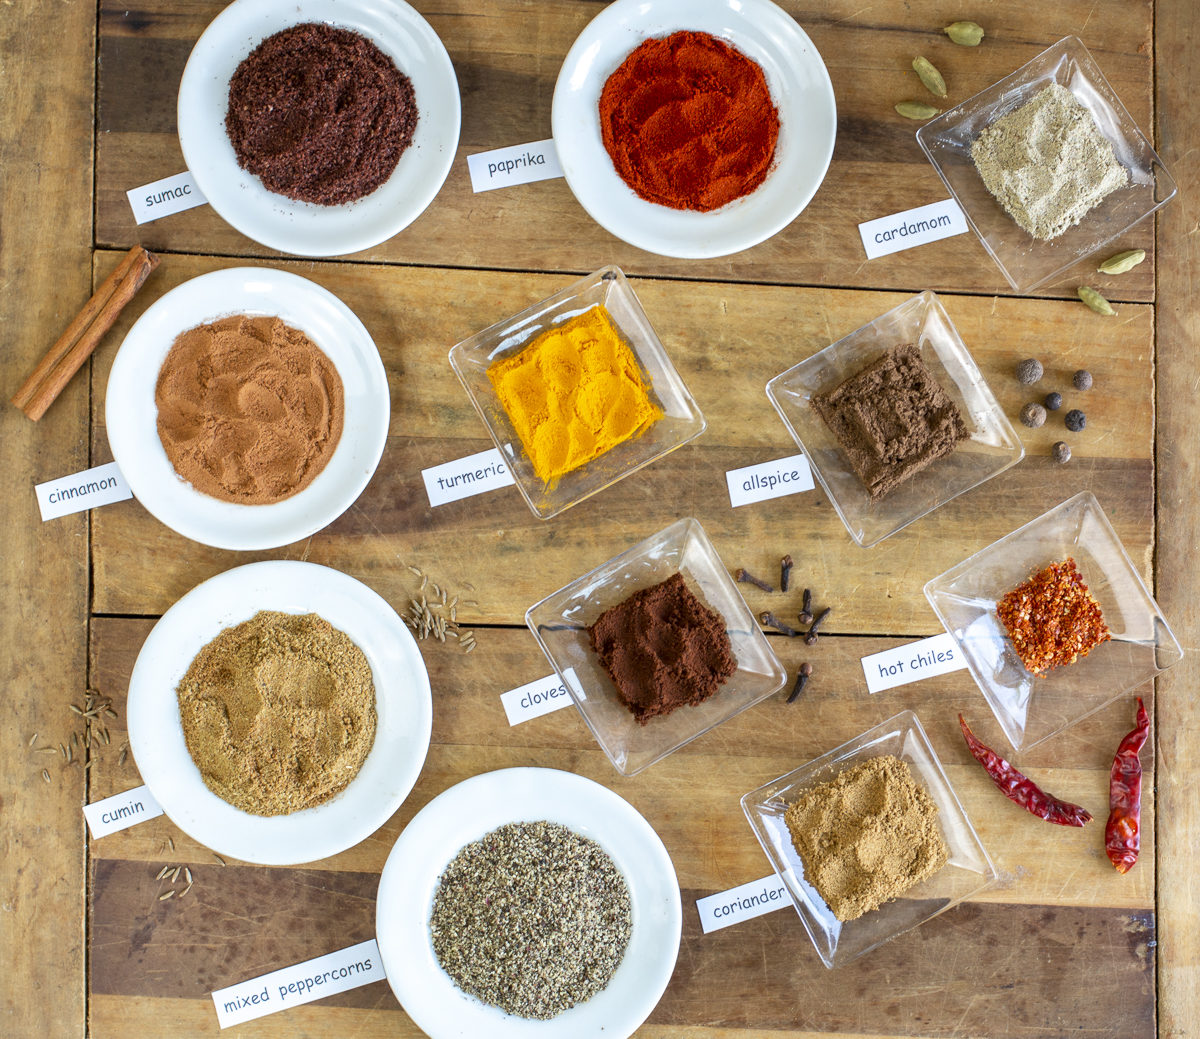 11 spices for Iraqi Spice Mix on a vintage board